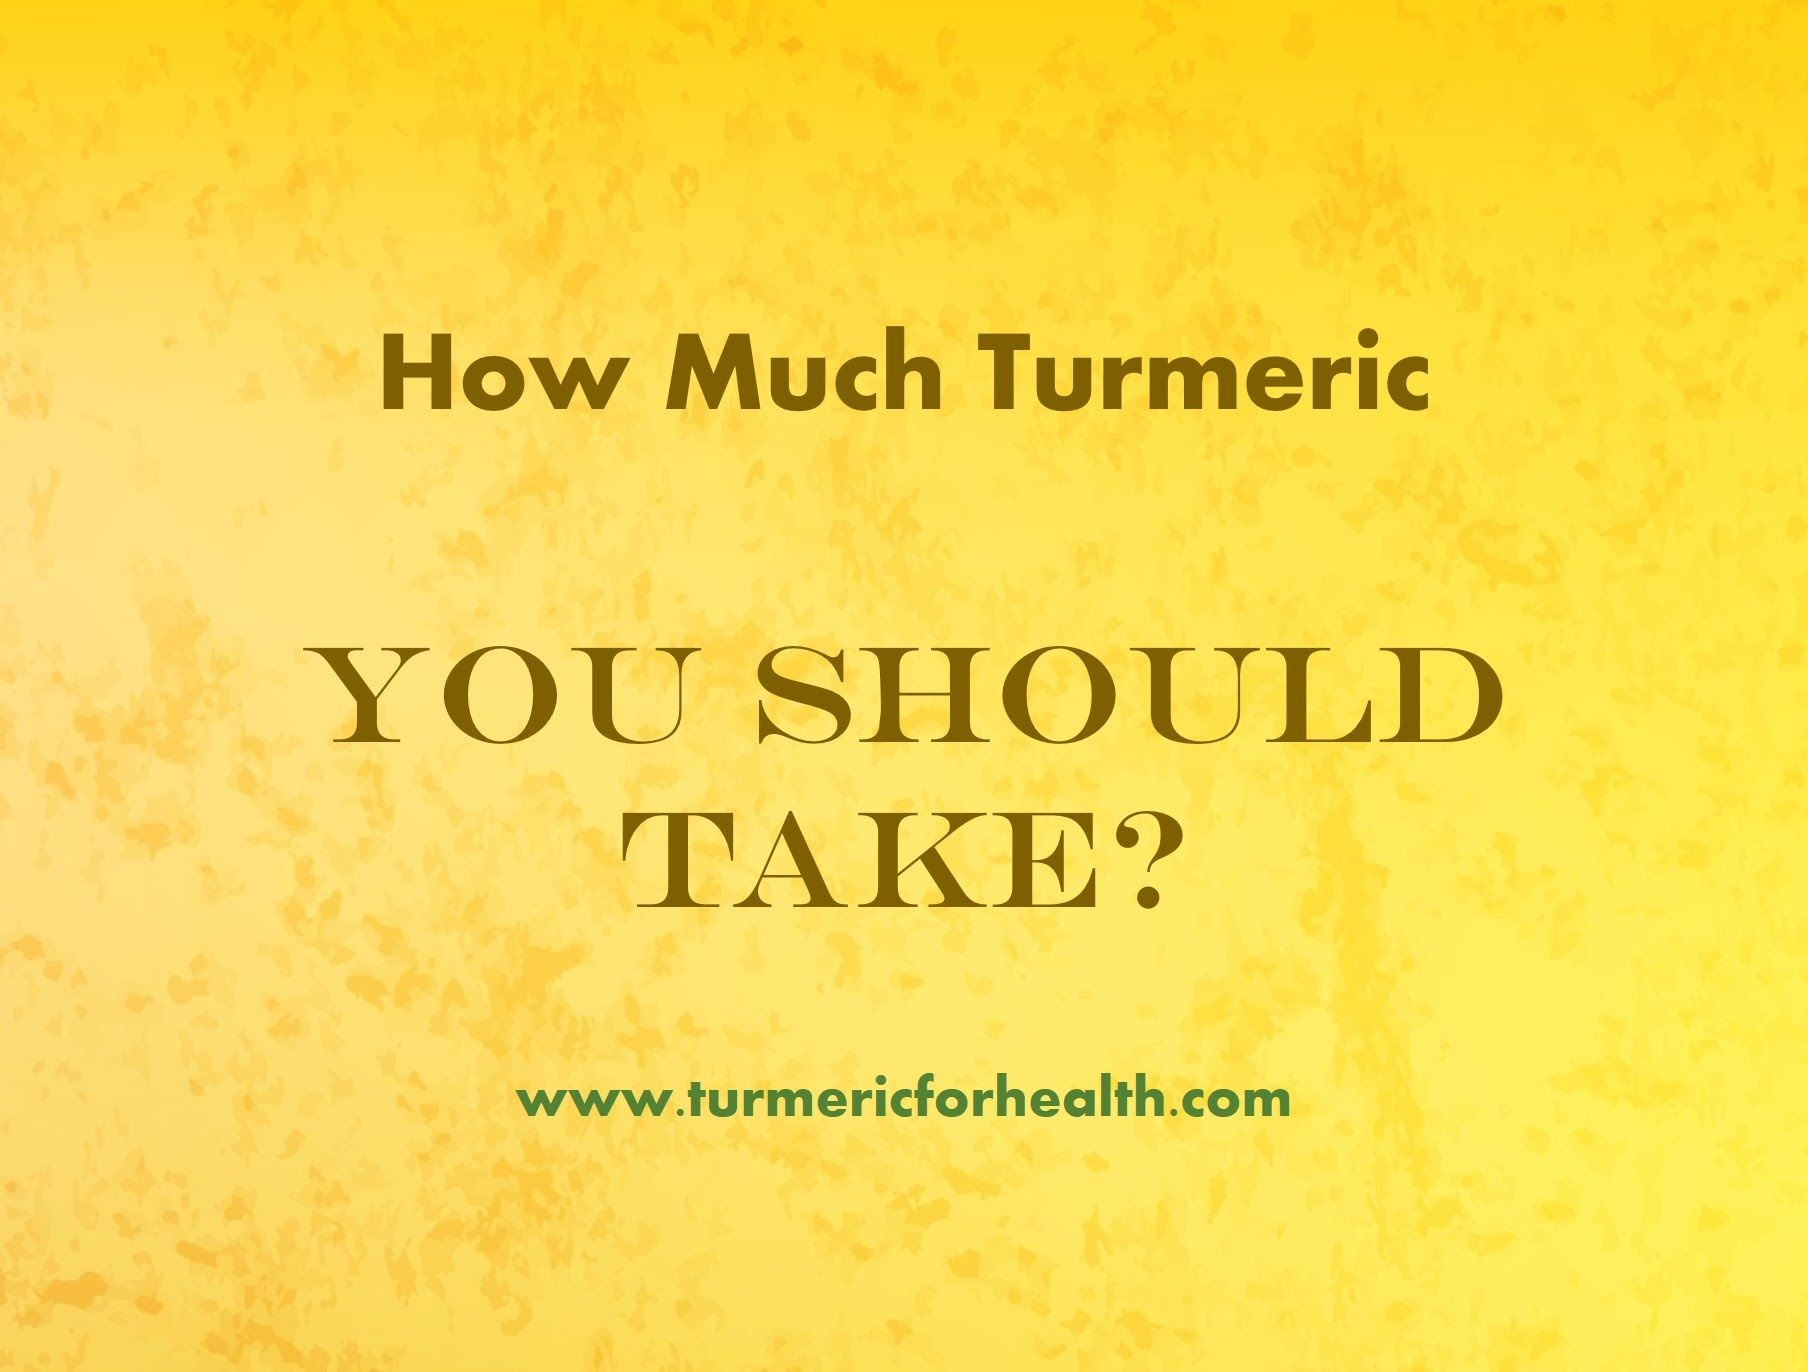 Turmeric Dosage How Much Turmeric You Should Take? How